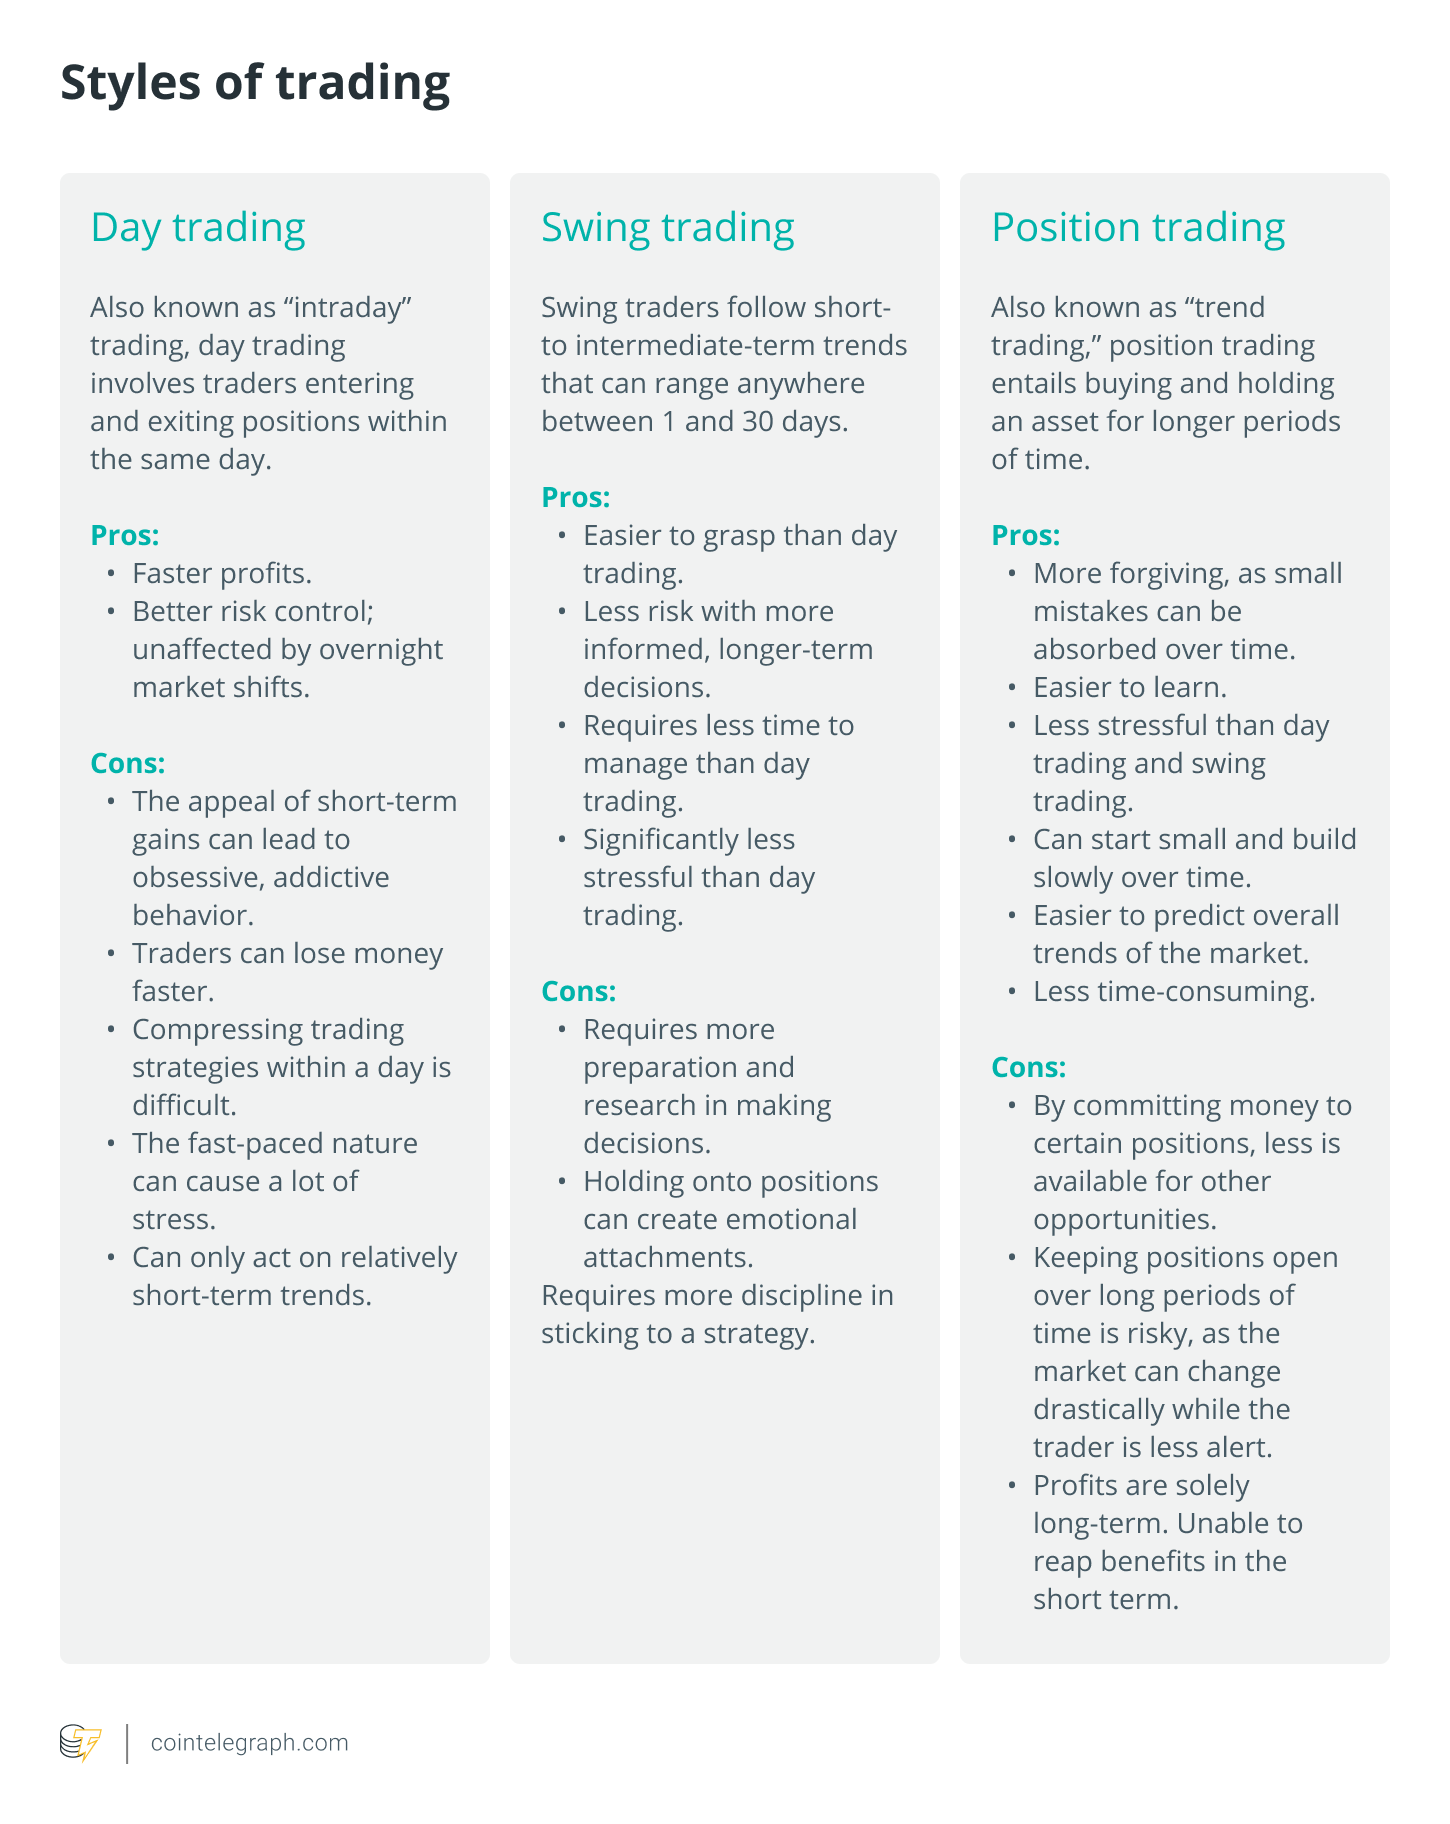 Styles of trading